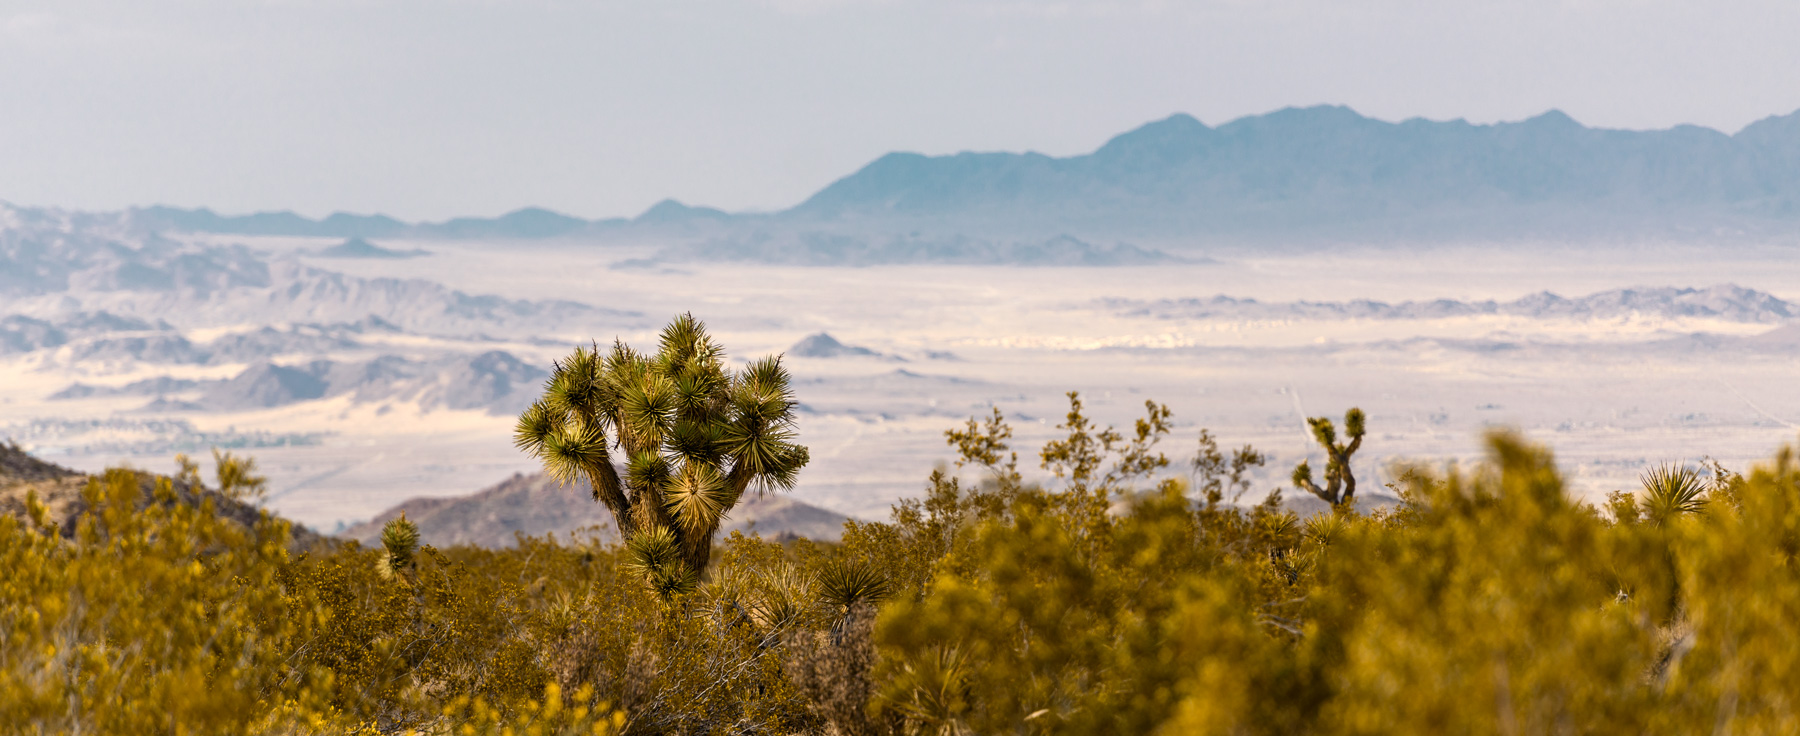 Joshua-Tree_View.jpg